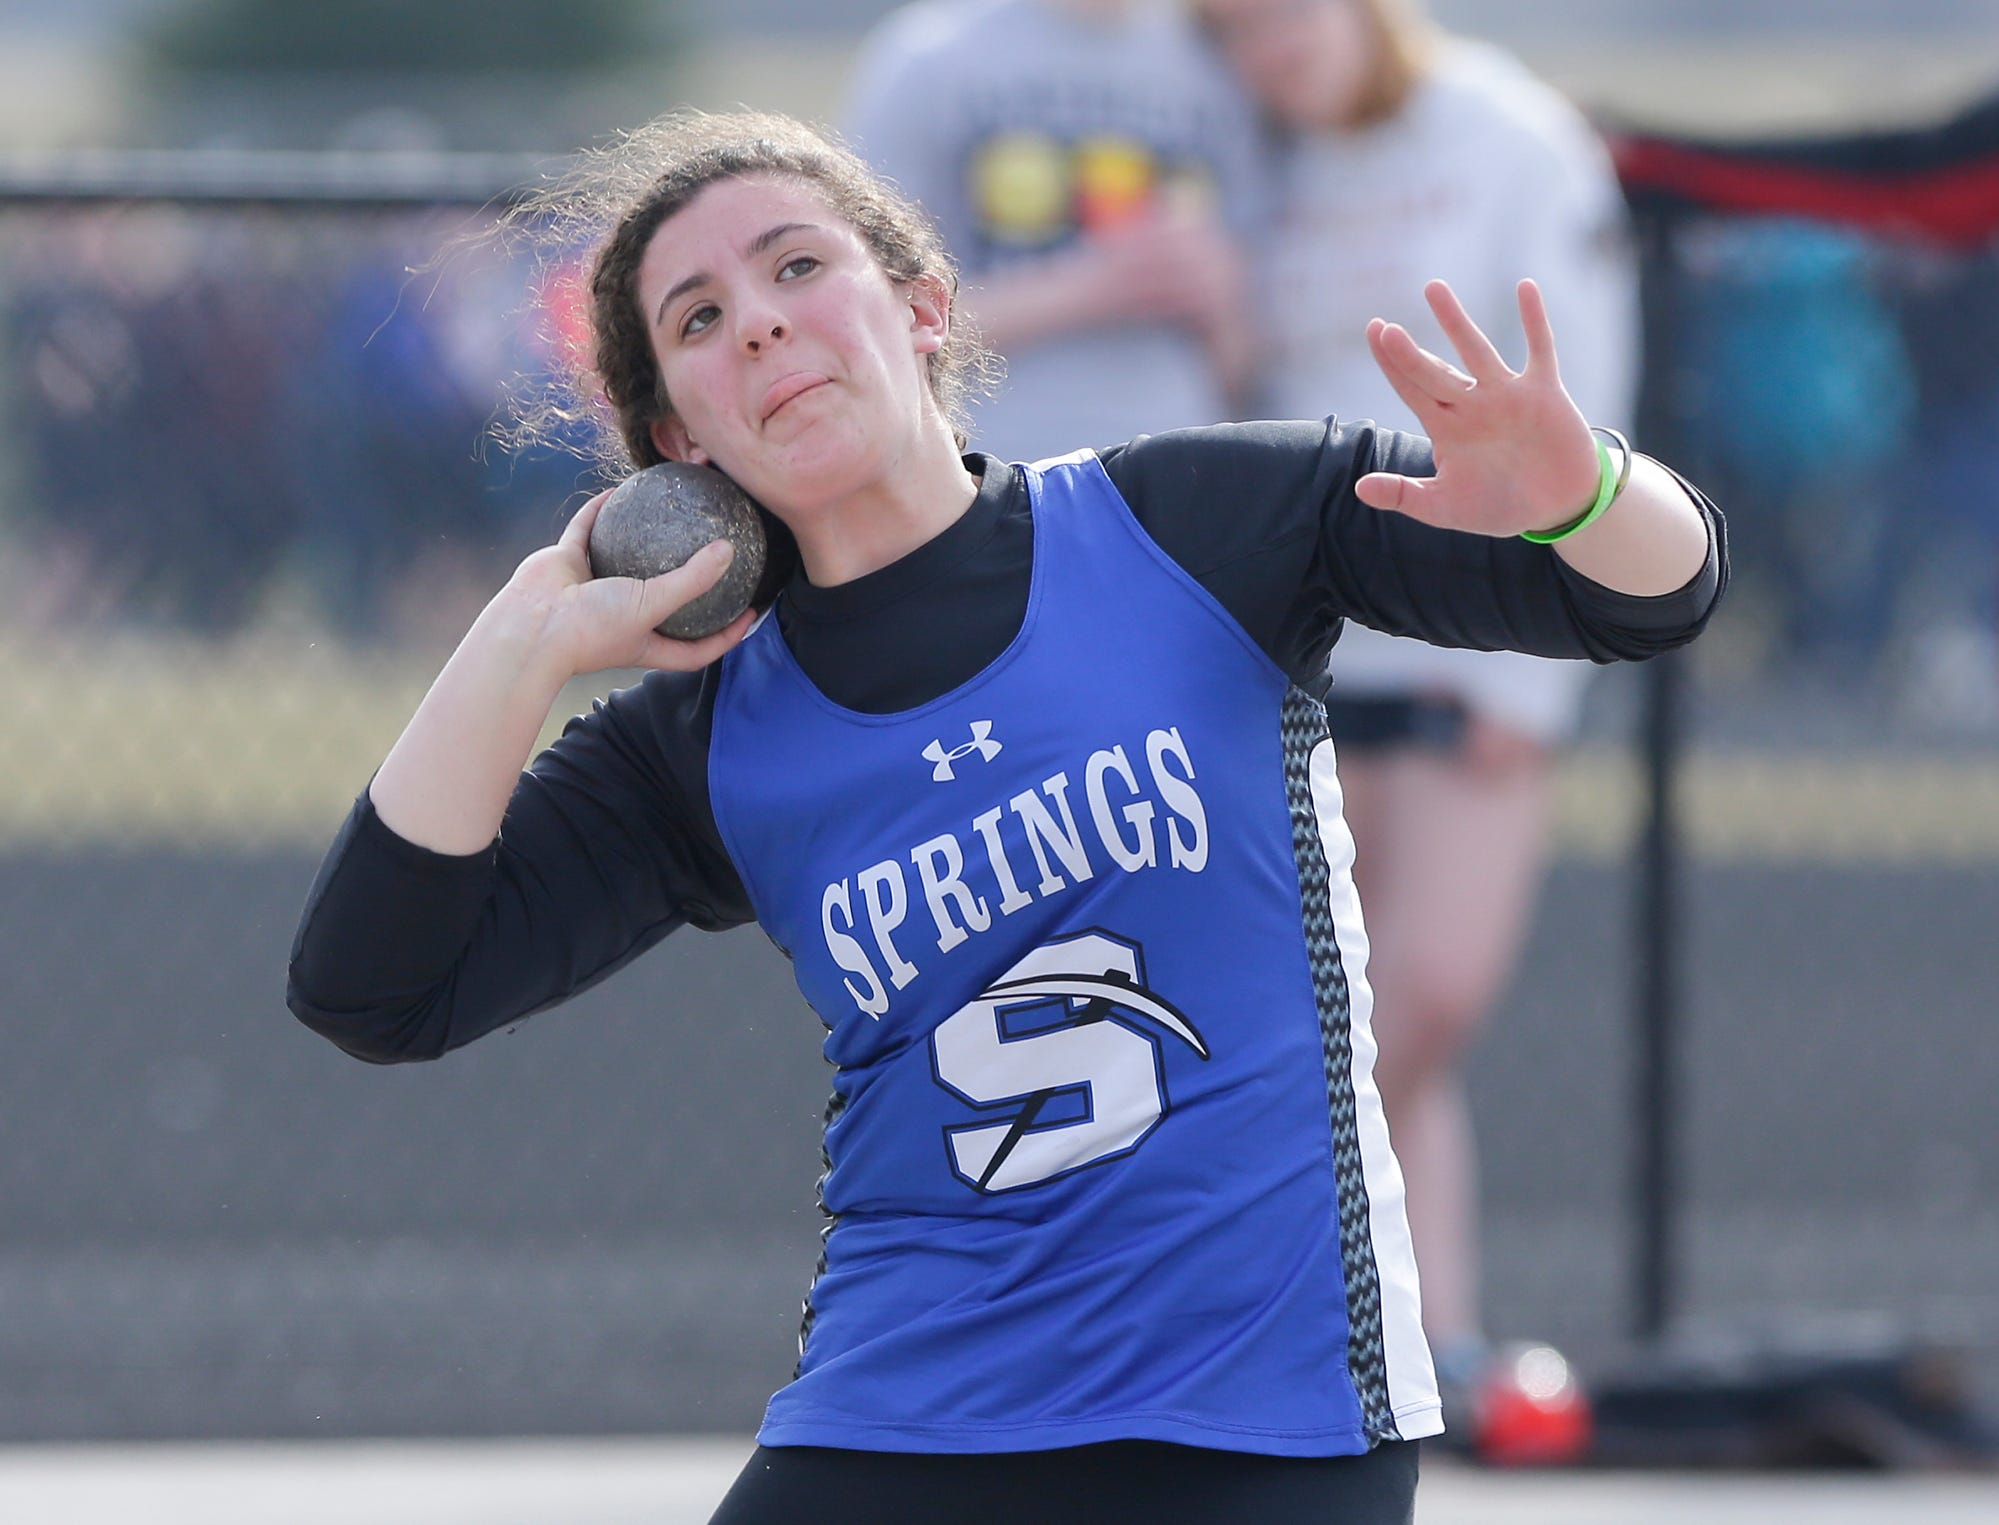 St Mary's Springs Academy's Cecelia Rodriguez takes part in the shot putt Tuesday, April 16, 2019 at North Fond du Lac High School in North Fond du Lac, Wis. Doug Raflik/USA TODAY NETWORK-Wisconsin